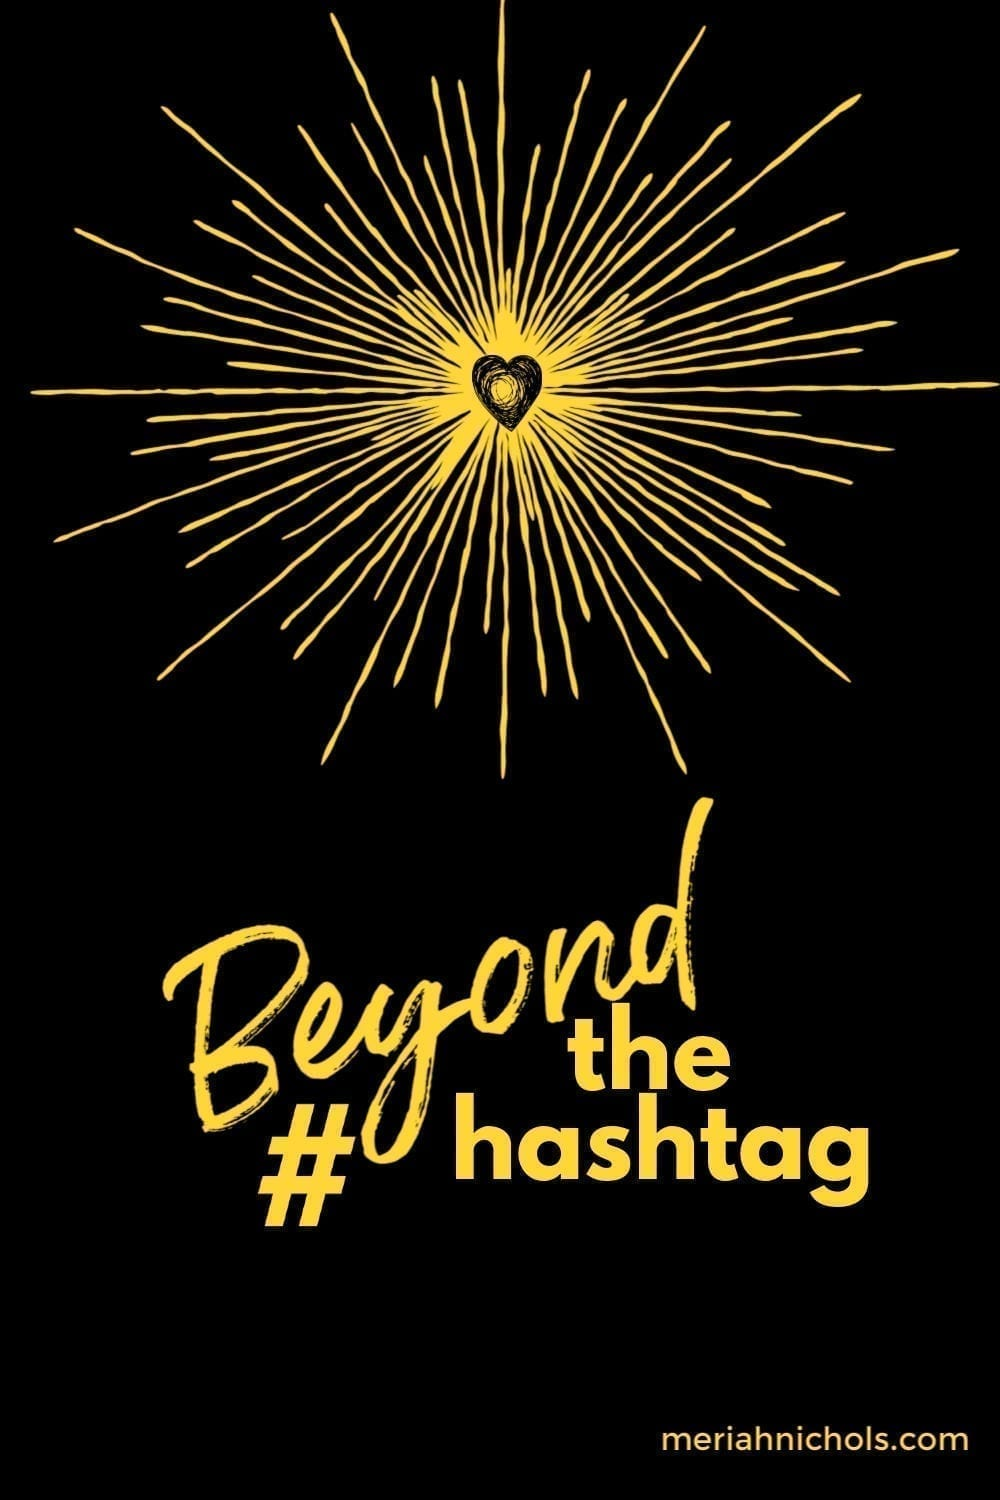 beyond the hashtag: Image of black background with gold star exploding and a black heart at the center